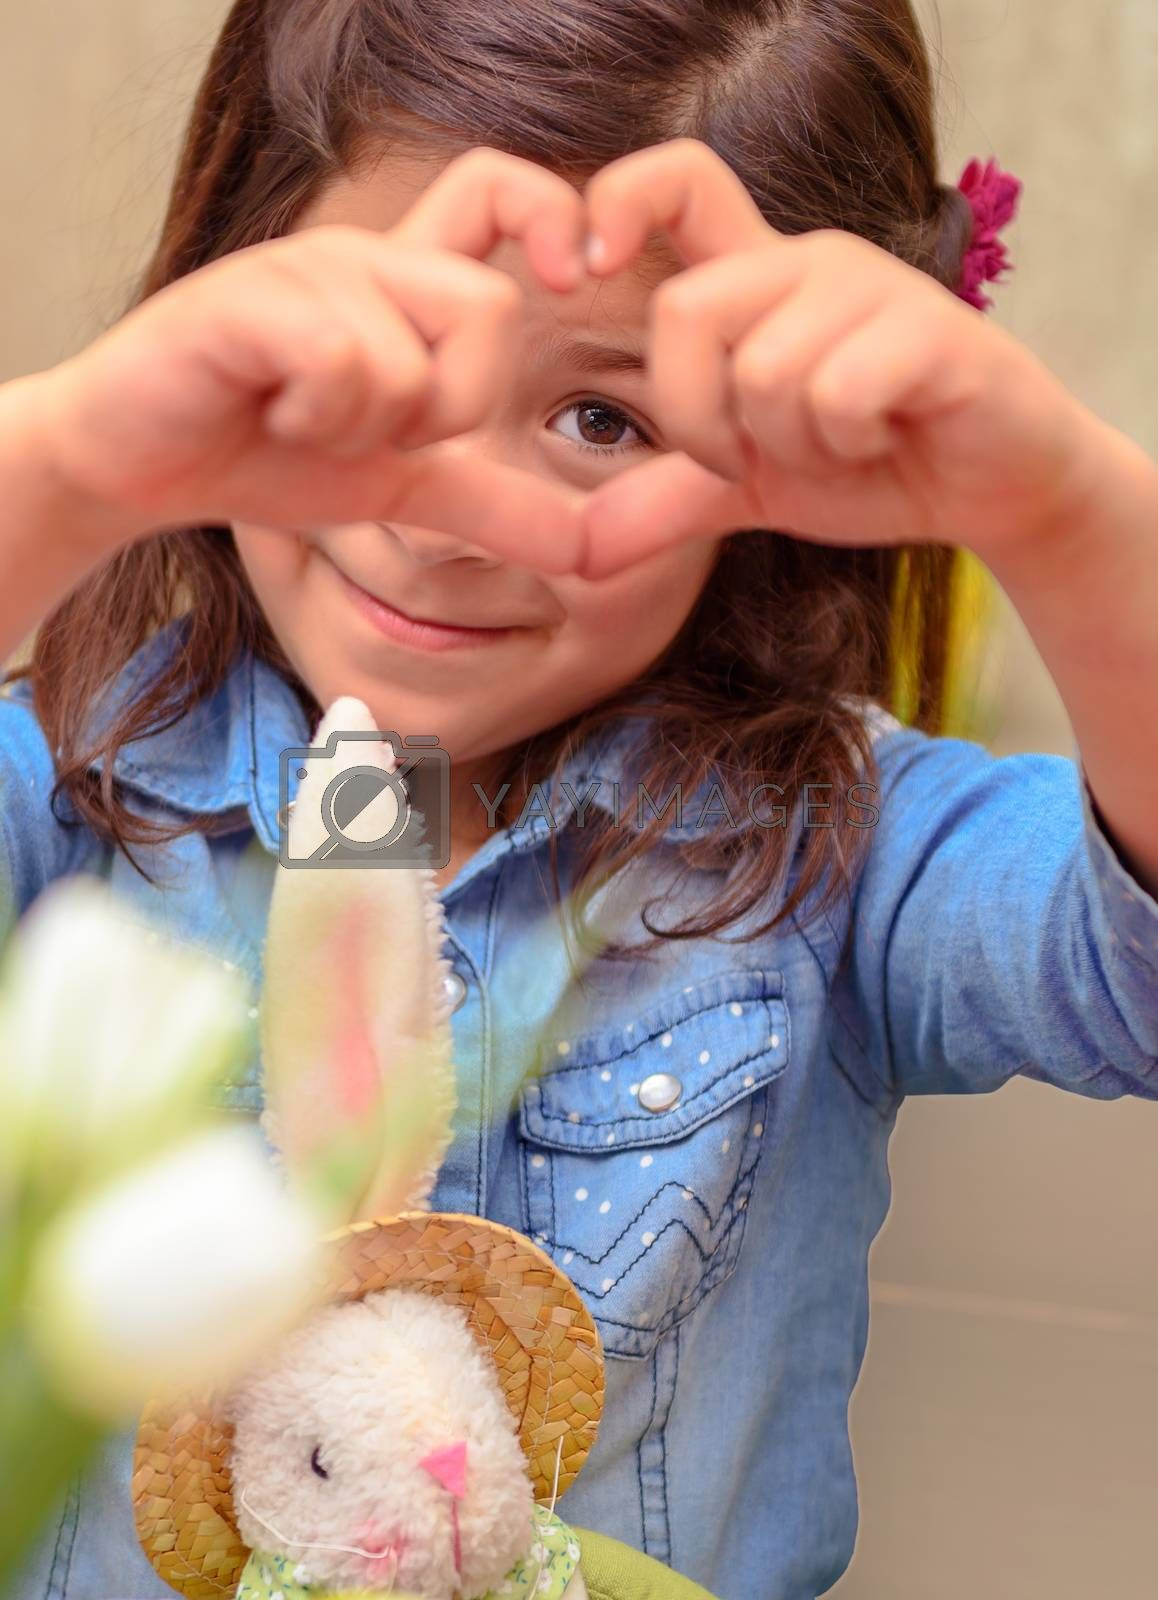 Portrait of a nice little girl shows gesture heart, spending time at home with her friend, little bunny soft toy, traditional symbol of Easter holiday, love concept